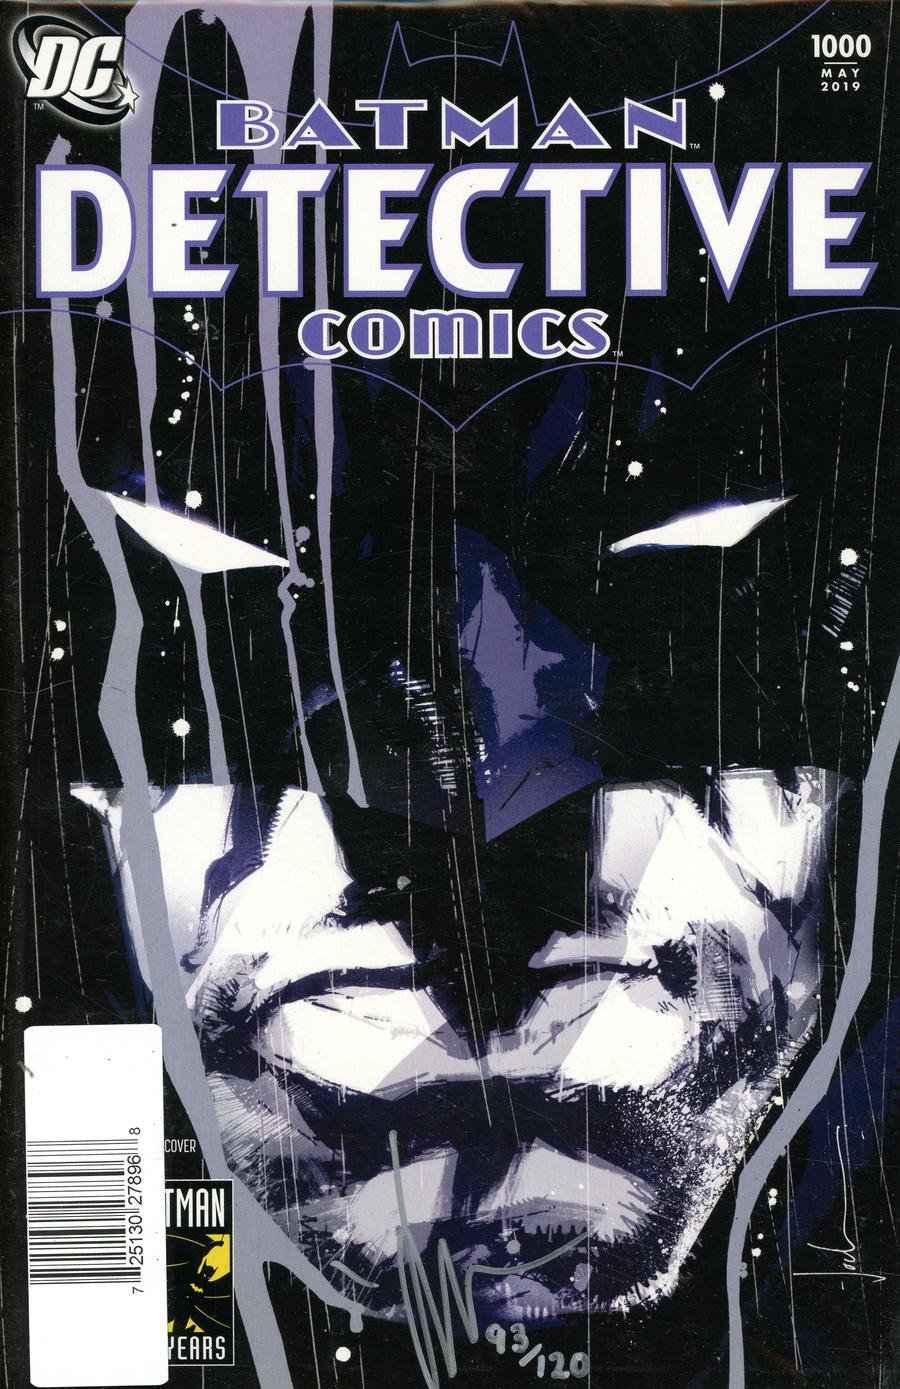 Detective Comics Vol 2 #1000 Cover Z DF Jock 2000s Variant Cover Signed By Jock